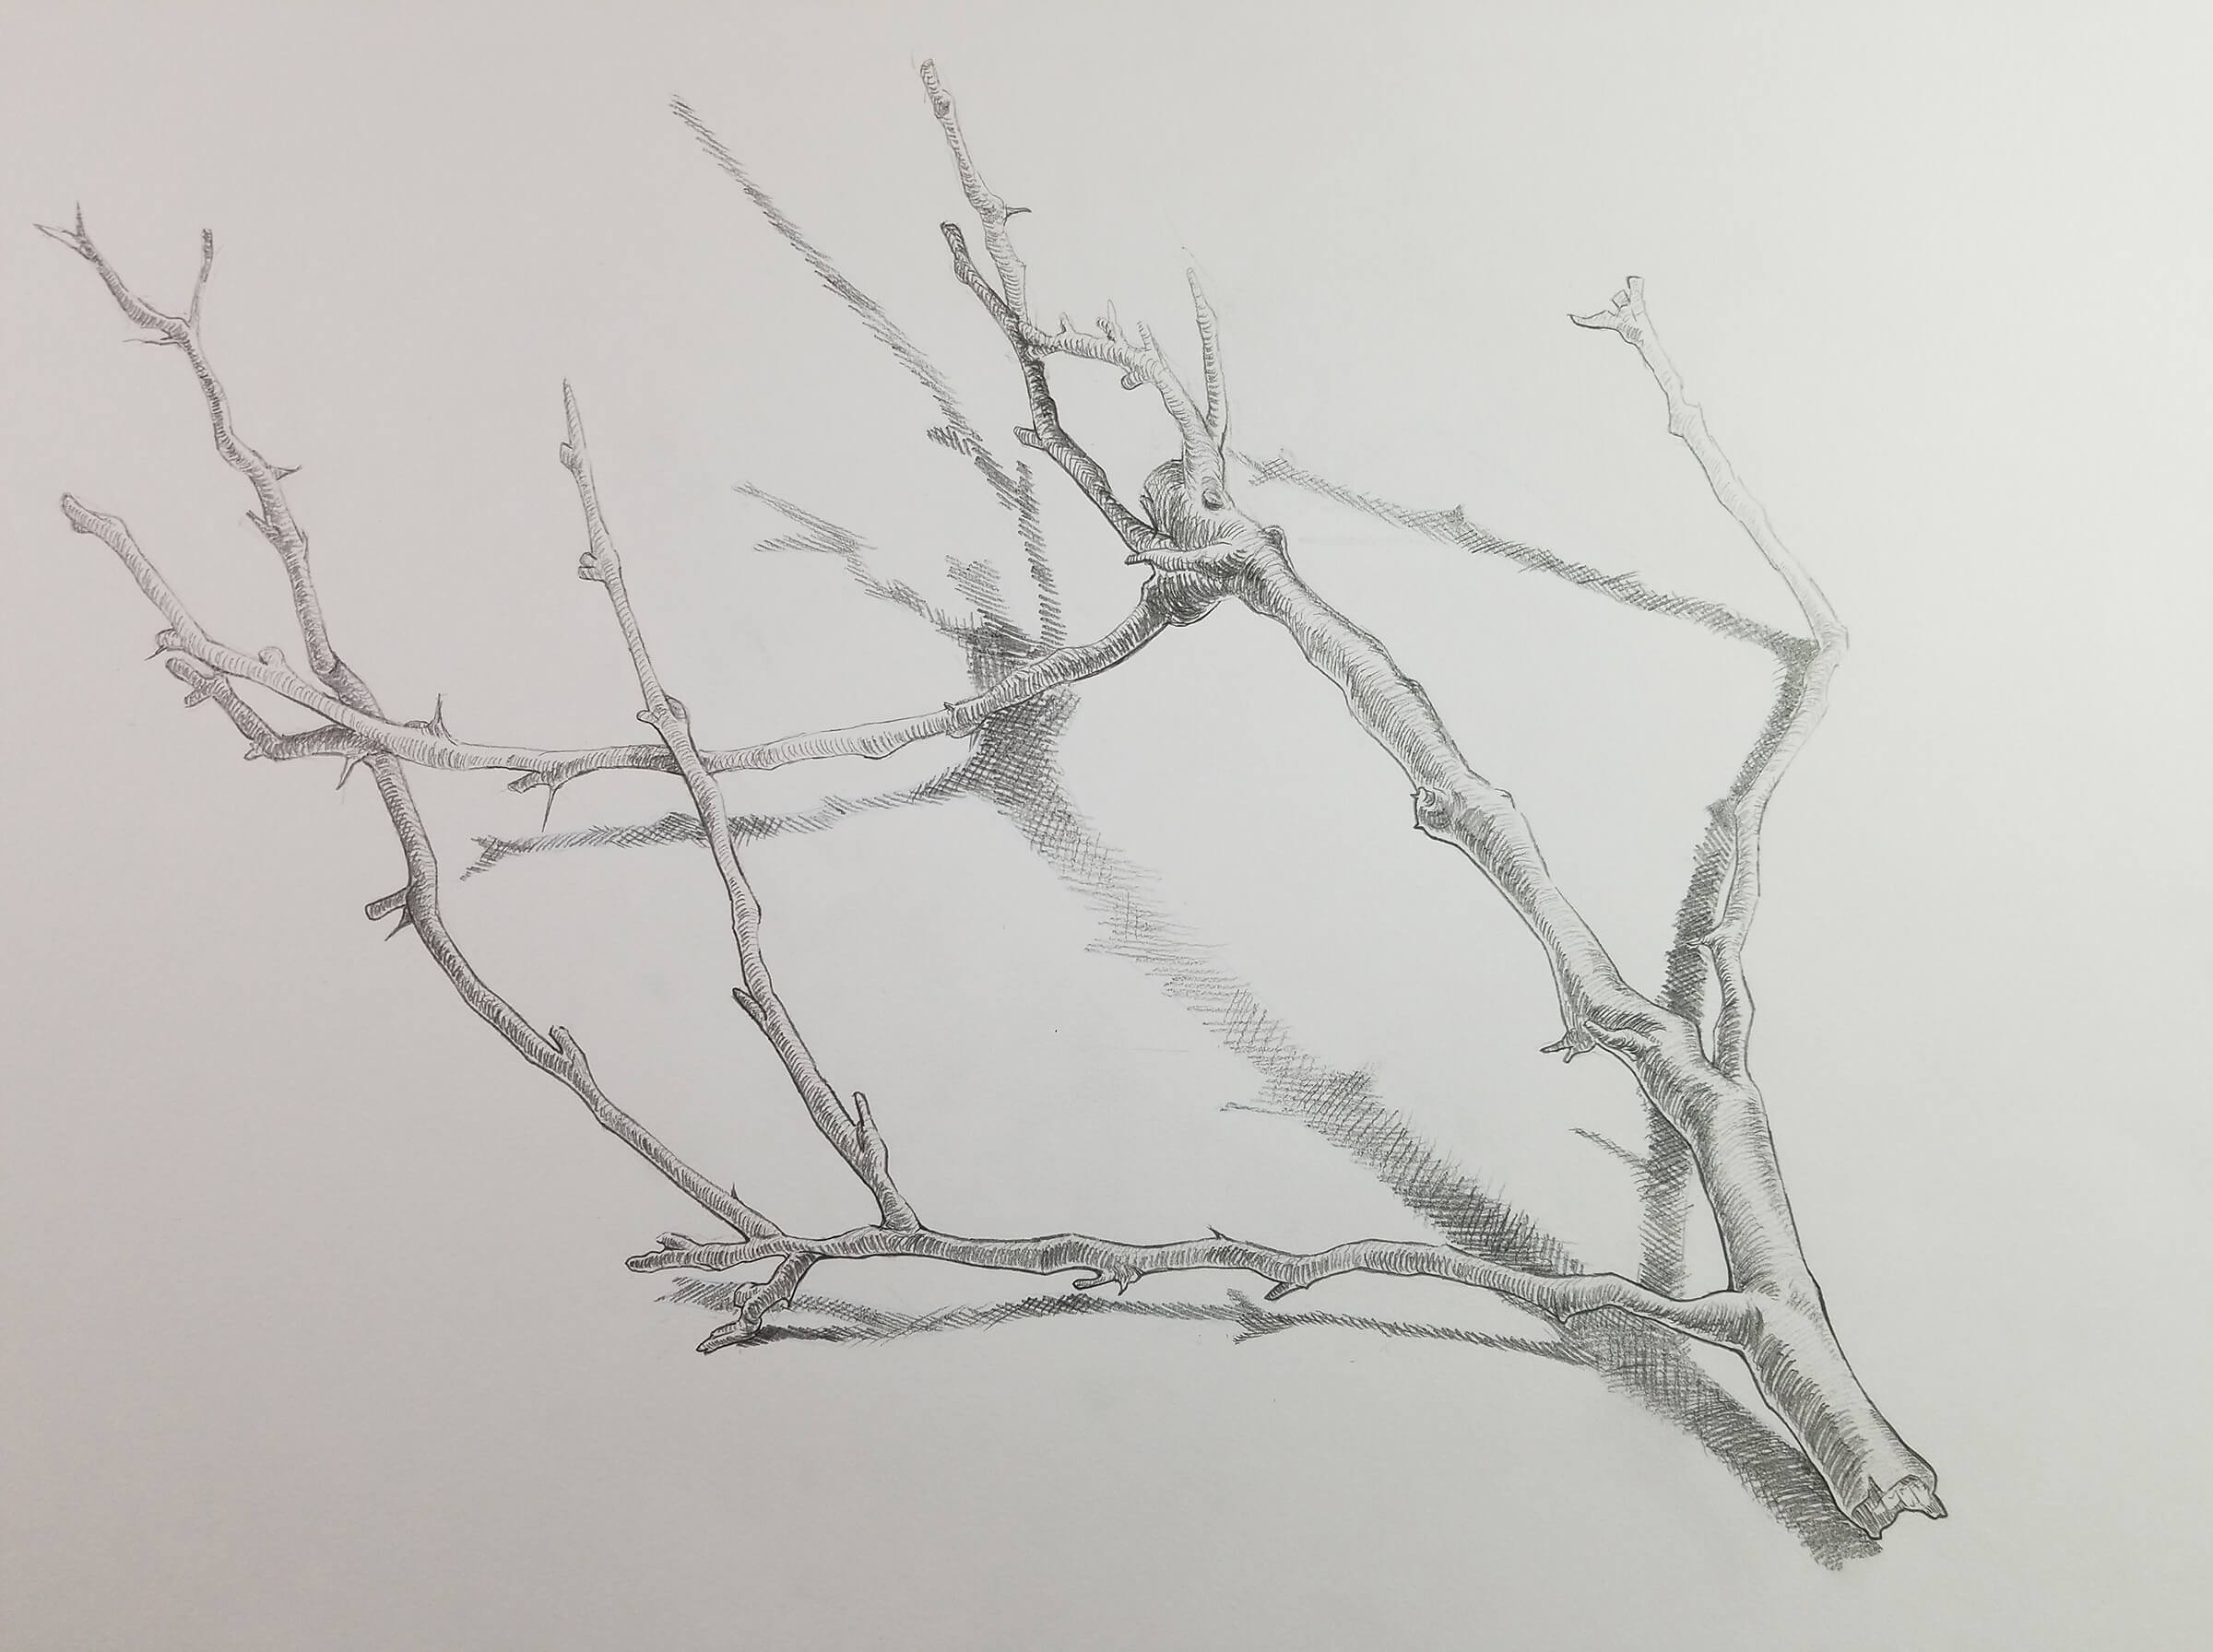 A detailed drawing of a tree branch